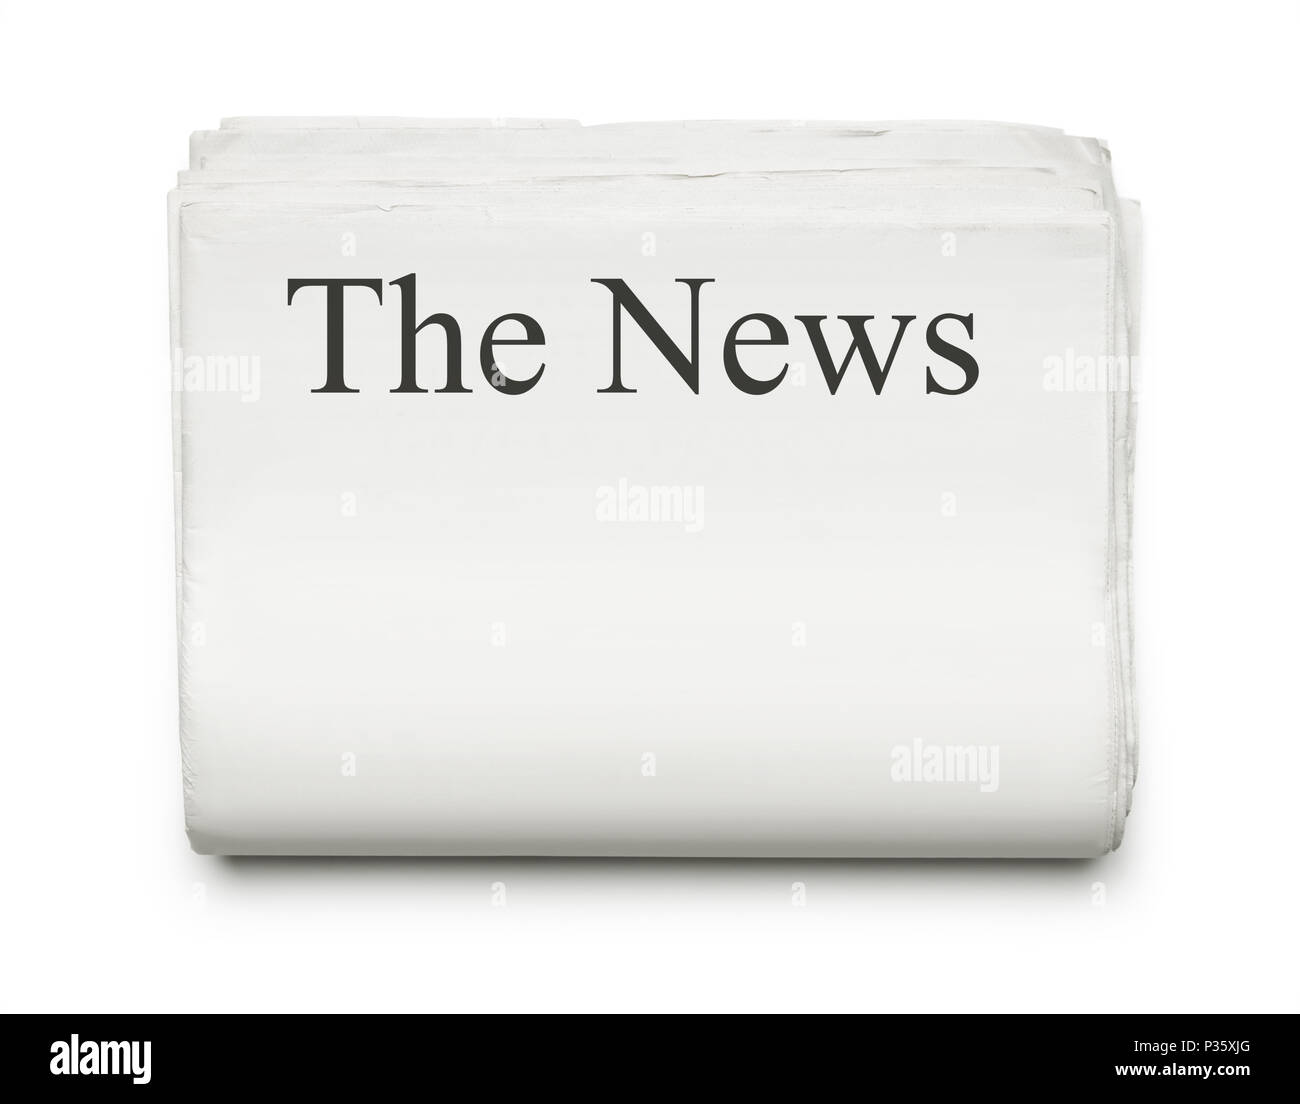 newspaper front page blank stock photos & newspaper front page blank